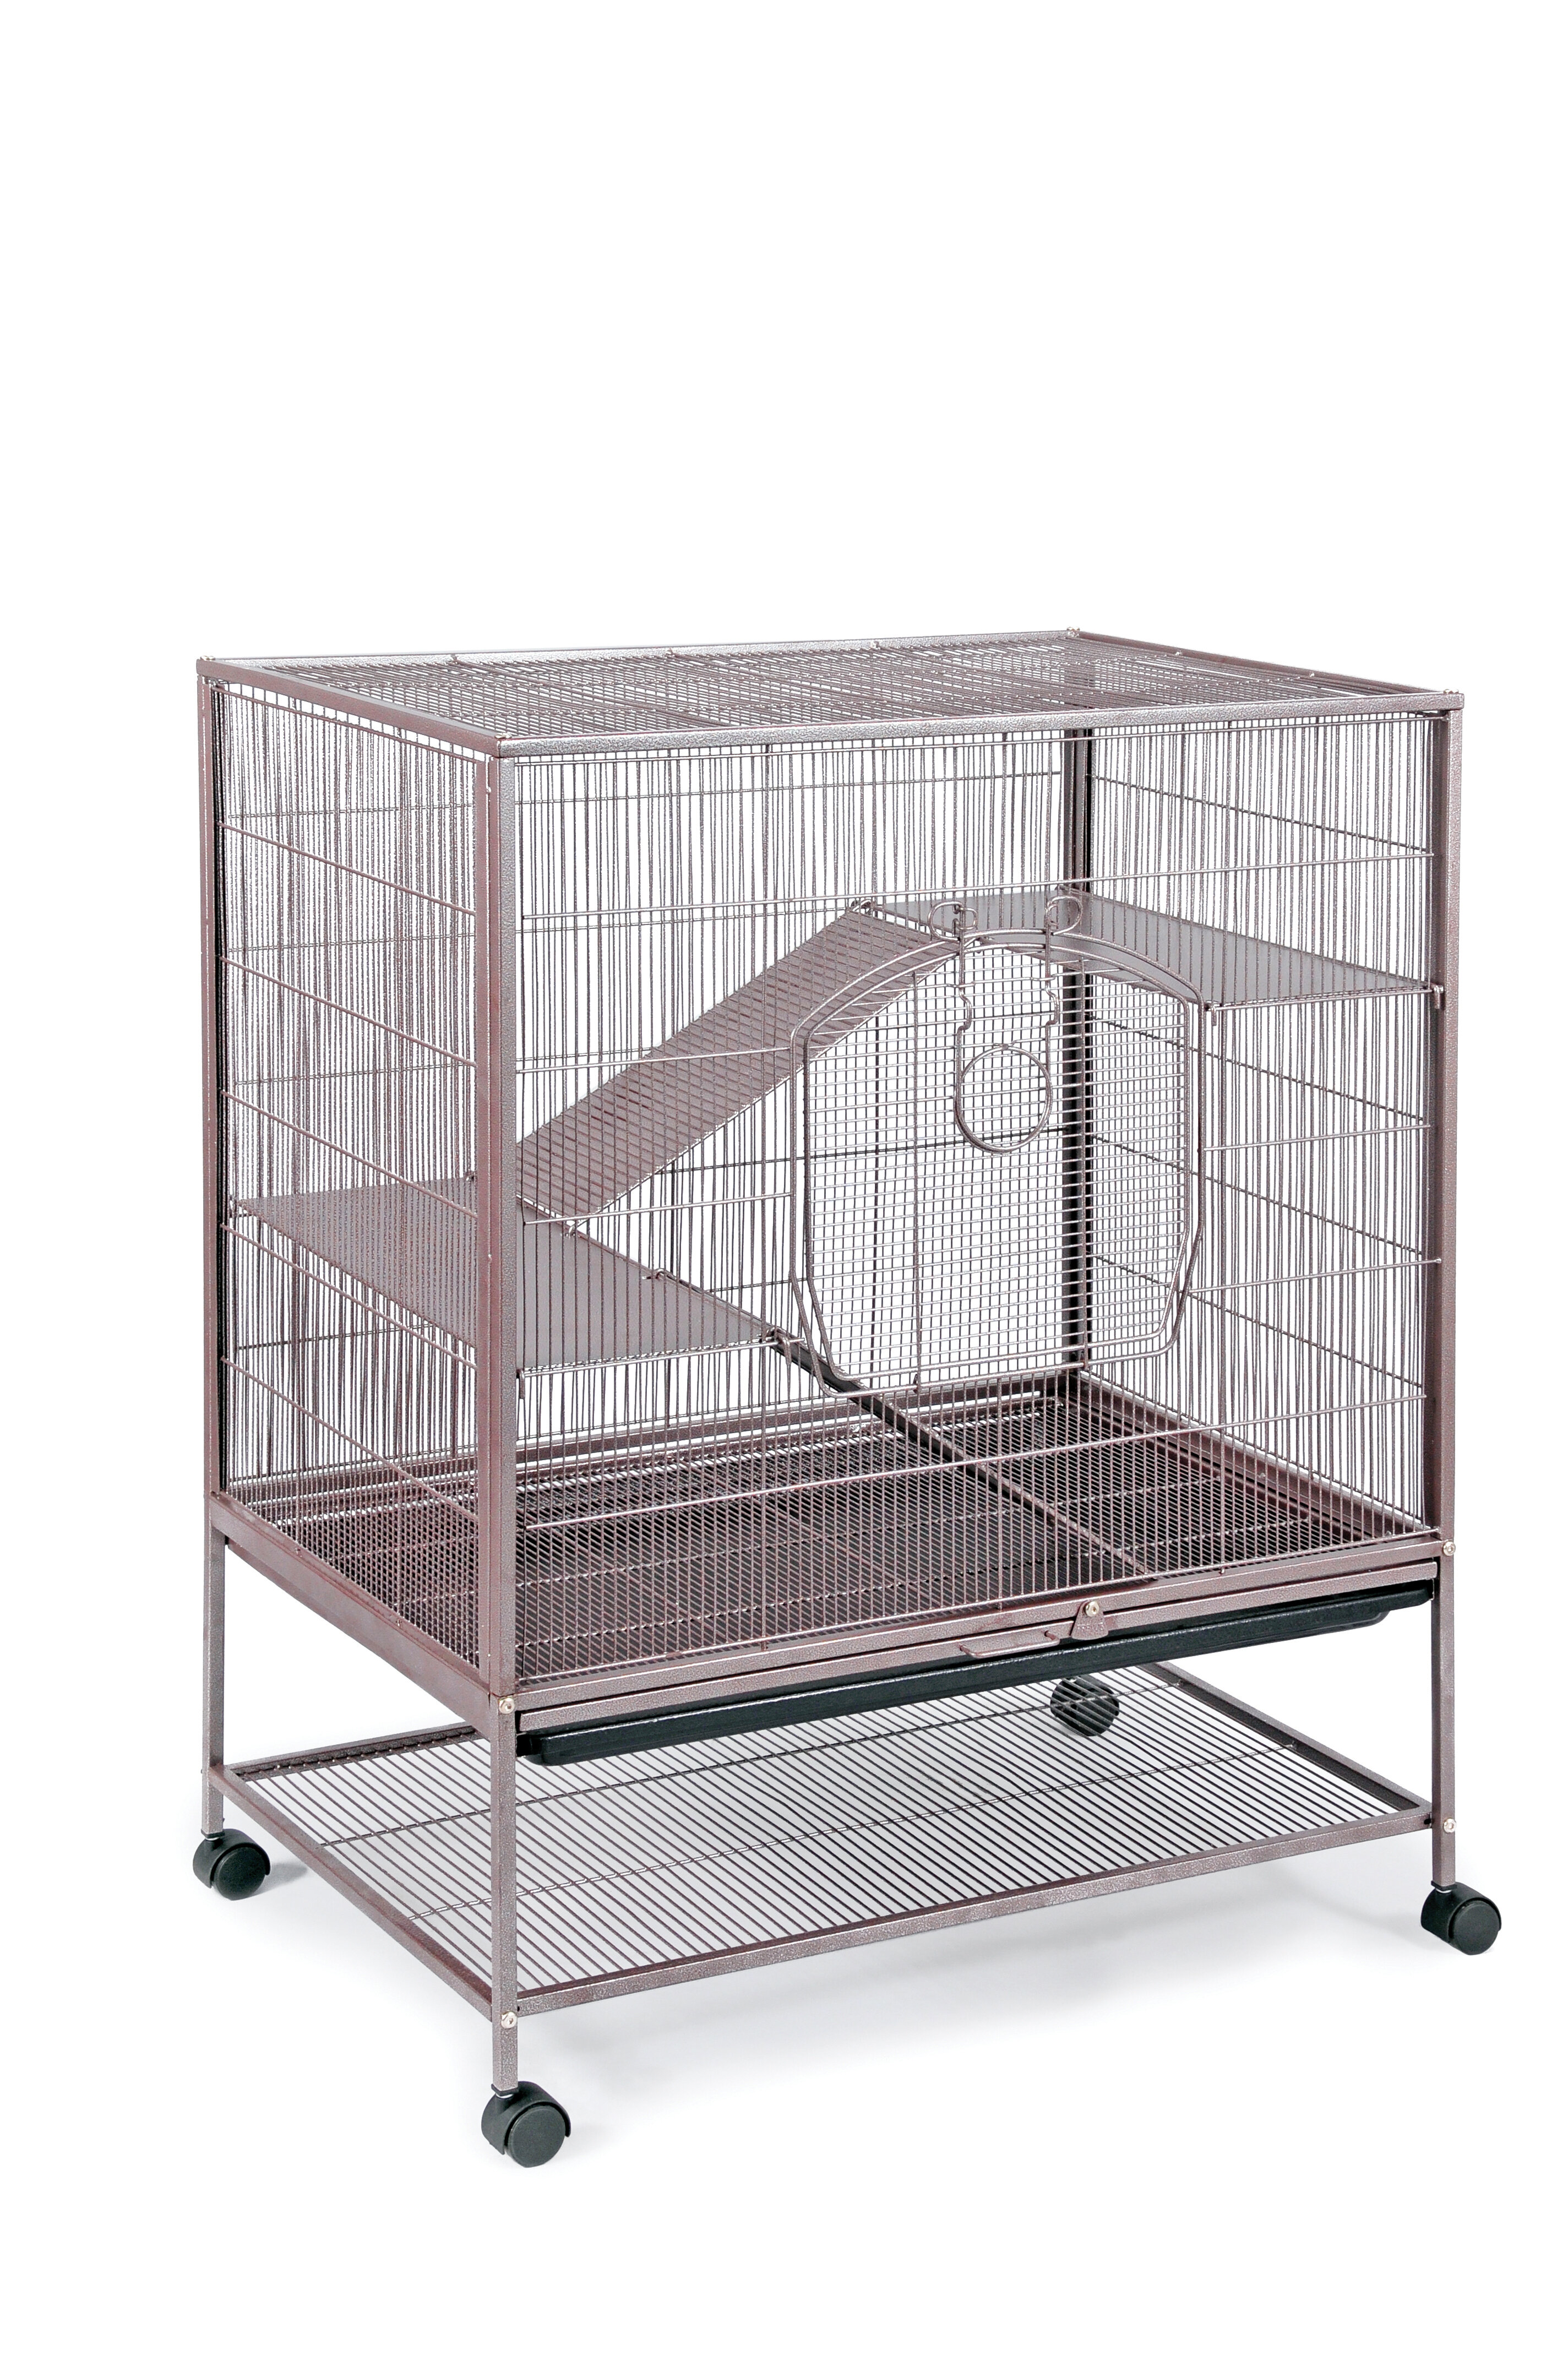 Prevue Hendryx Small Animal Cage & Reviews   Wayfair